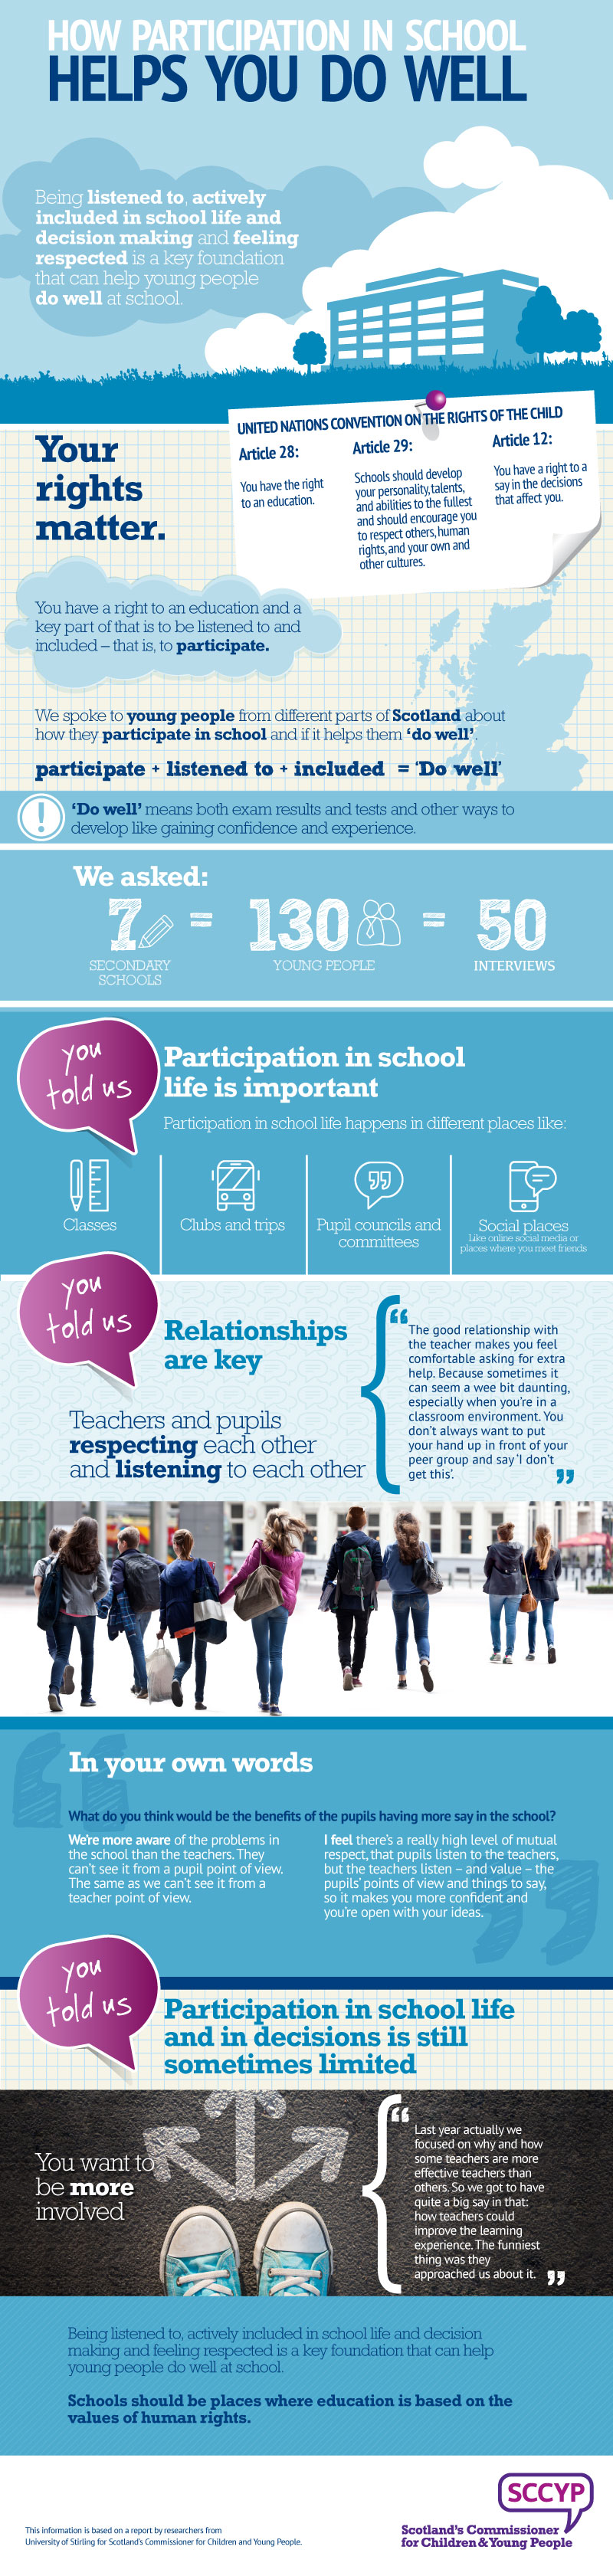 Image of our infographic on How Young People's Participation in School Supports Achievement and Attainment. The text summary conveys the information in this infographic in a screen-reader accessible form.